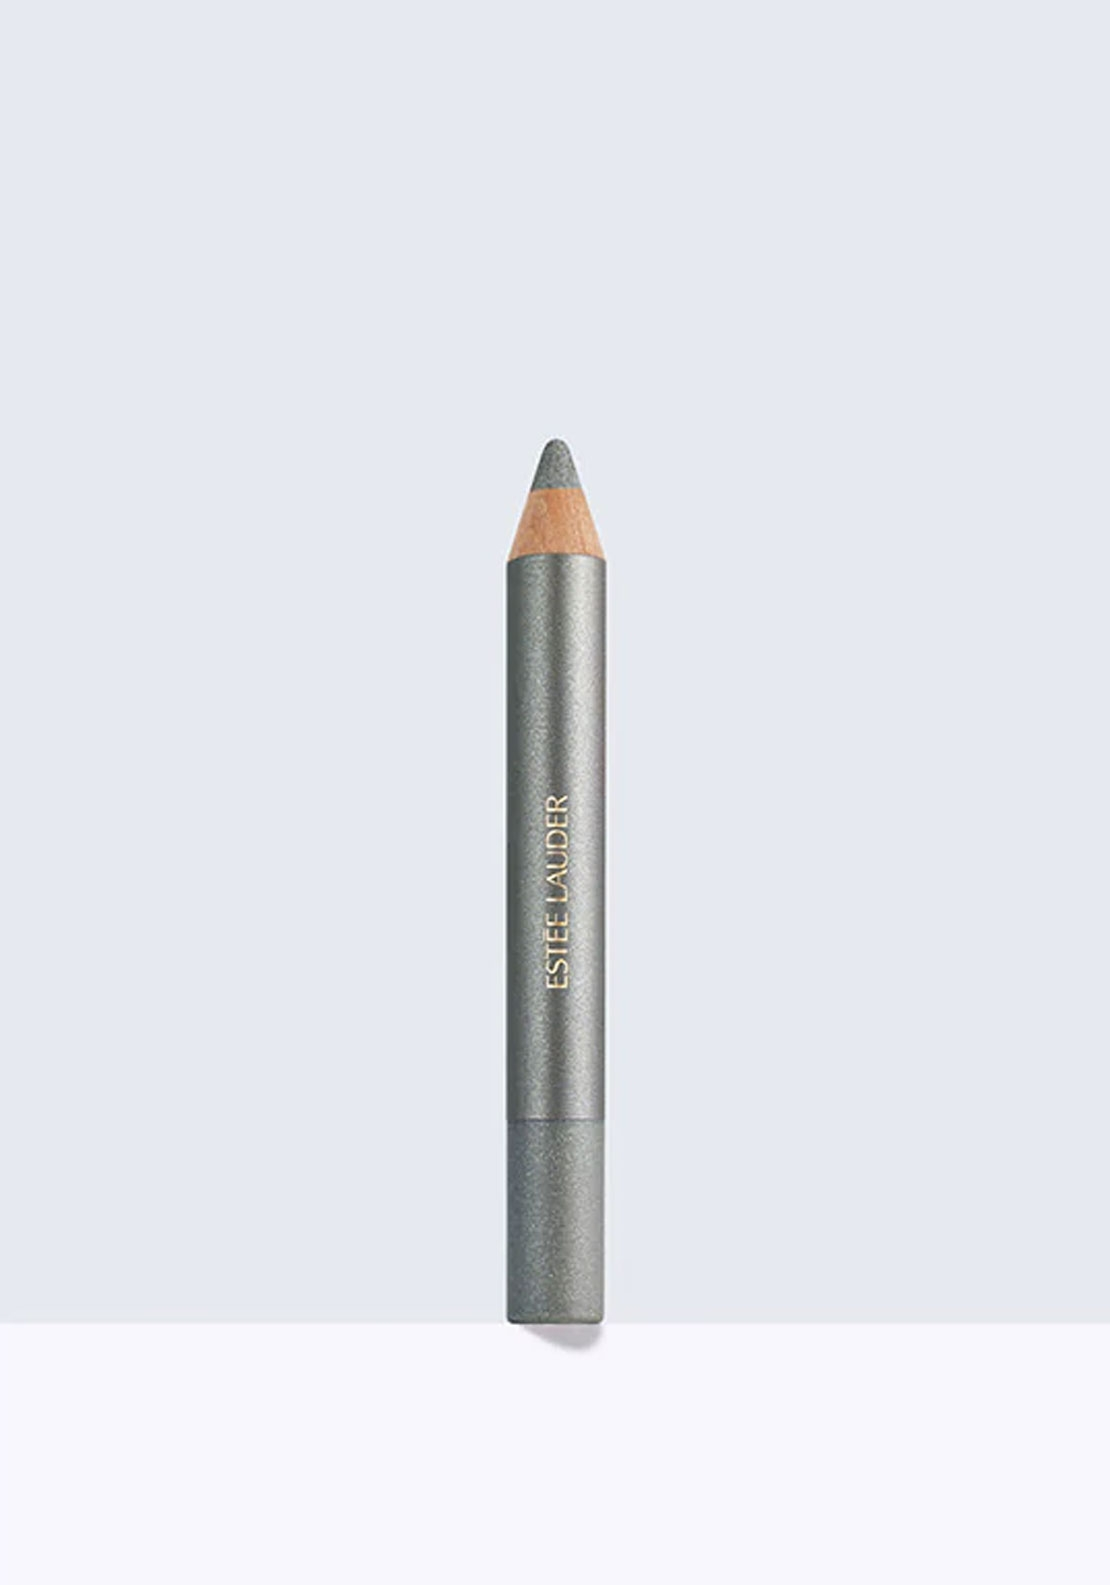 Estee Lauder Magic Smoky Eye Shadow Stick, Cool Ash